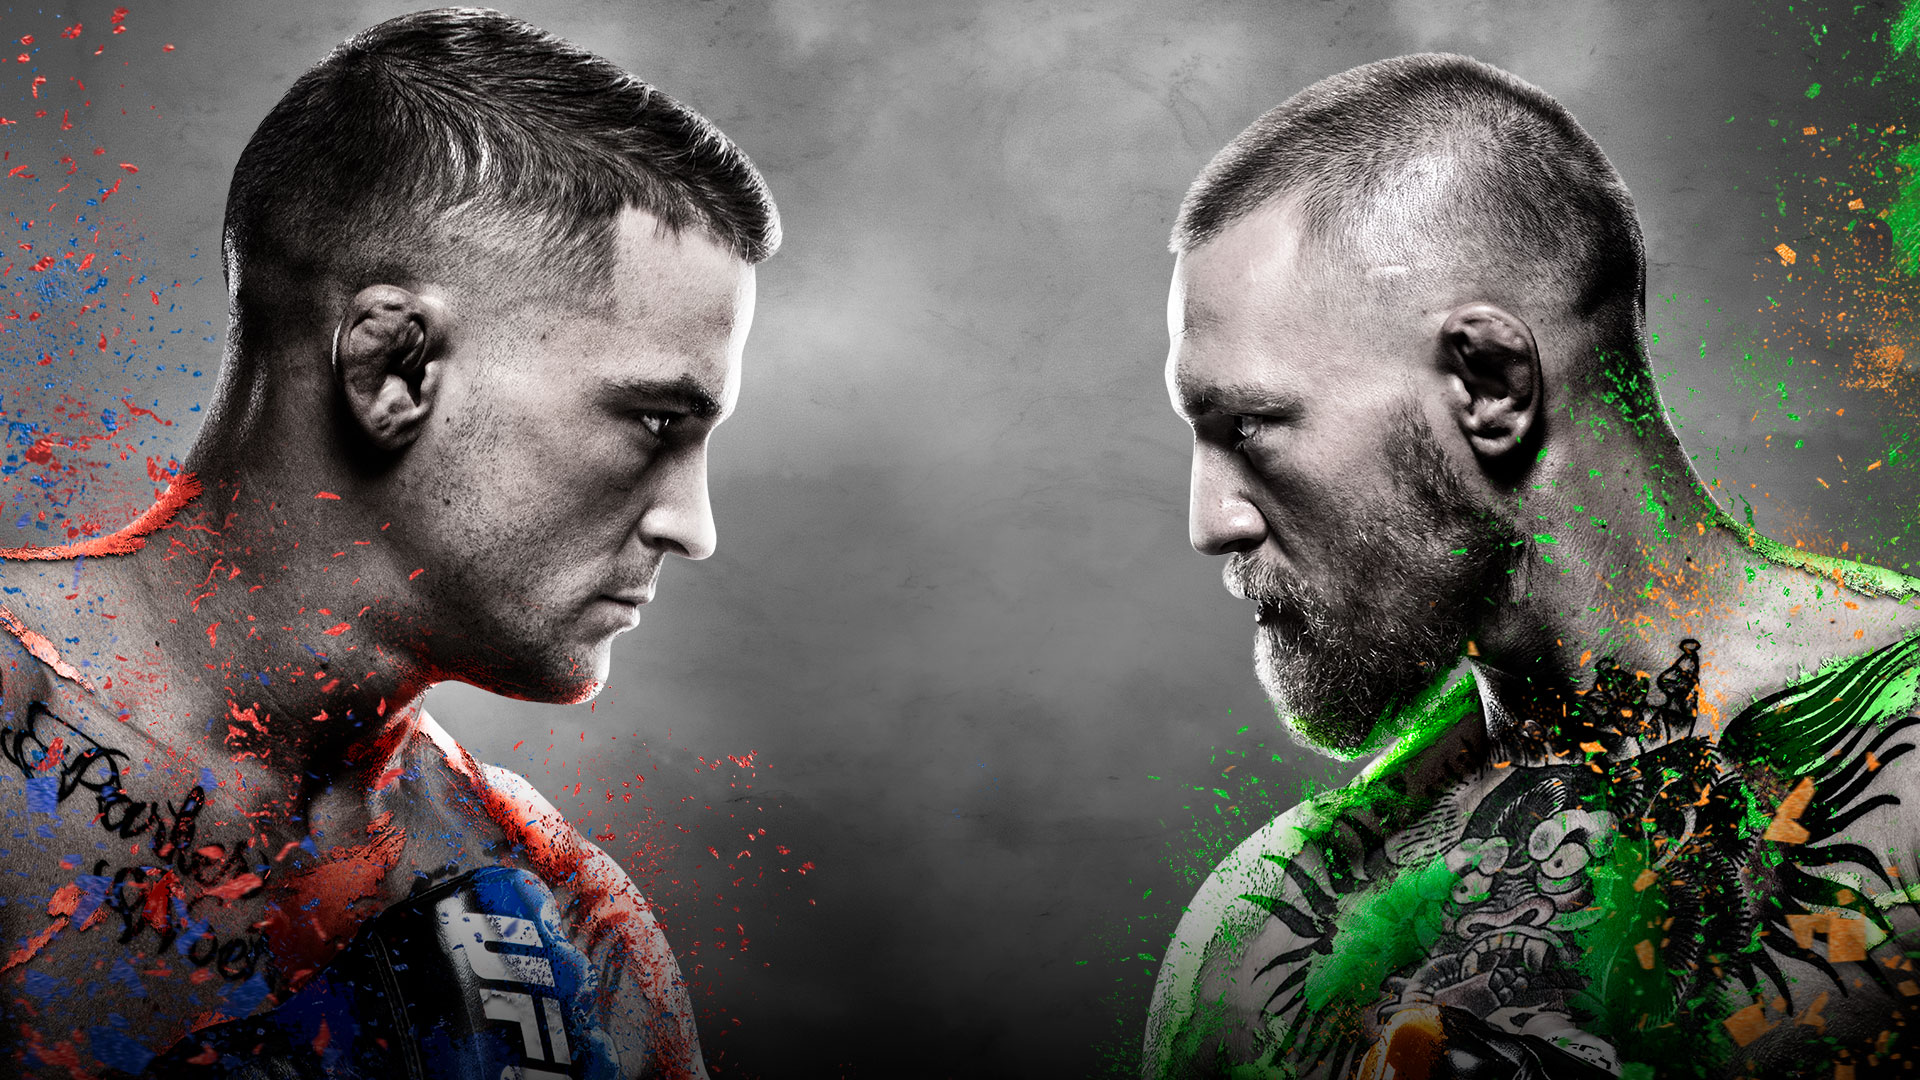 UFC 257: Poirier vs McGregor 2 is live Jan 23rd on ESPN+ and UFC Fight Pass